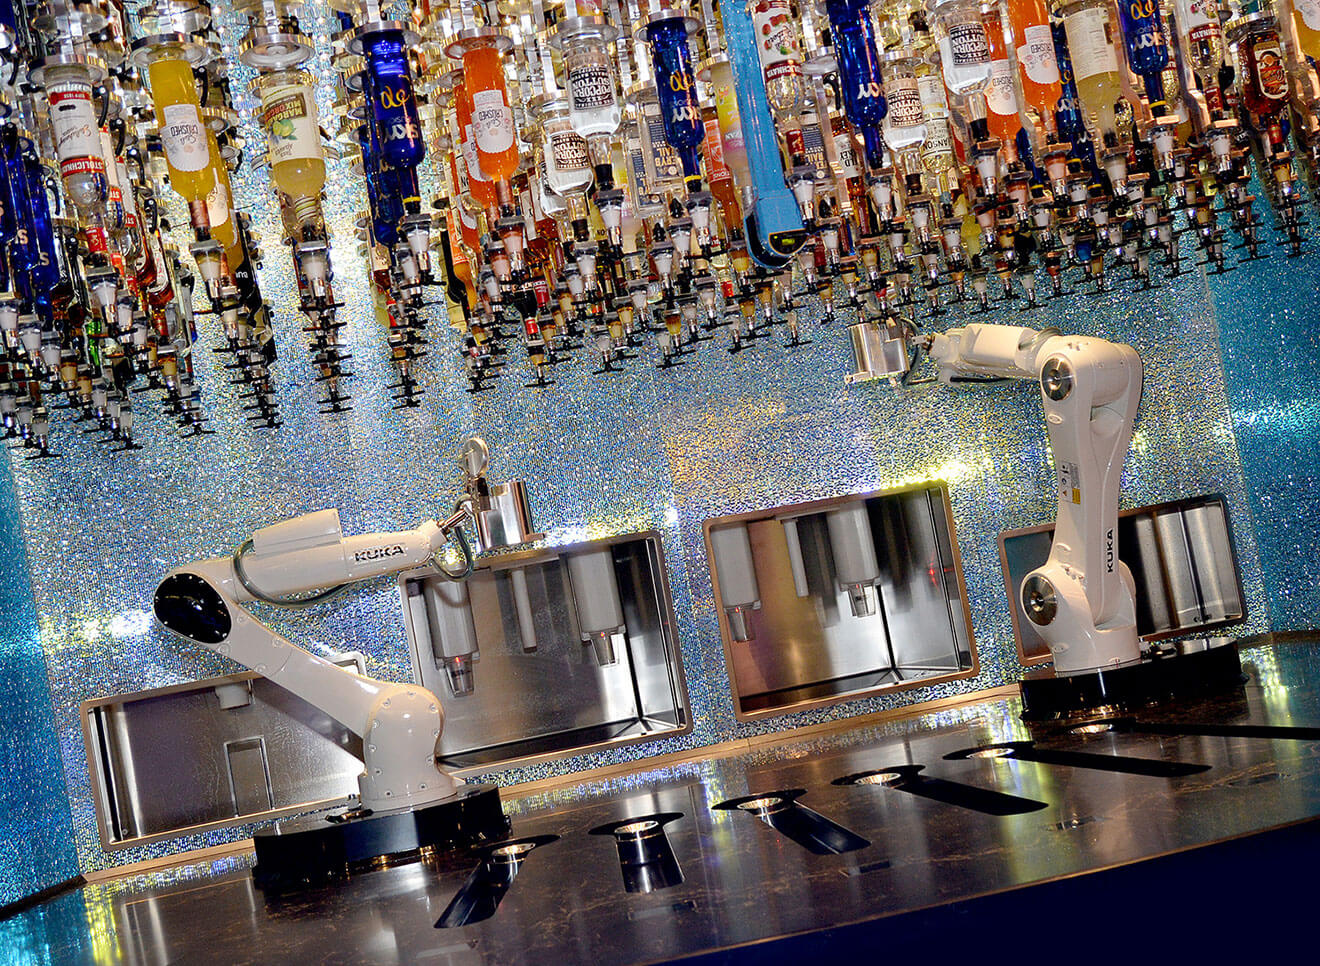 tipsy robot bar, las vegas' first robotic bar